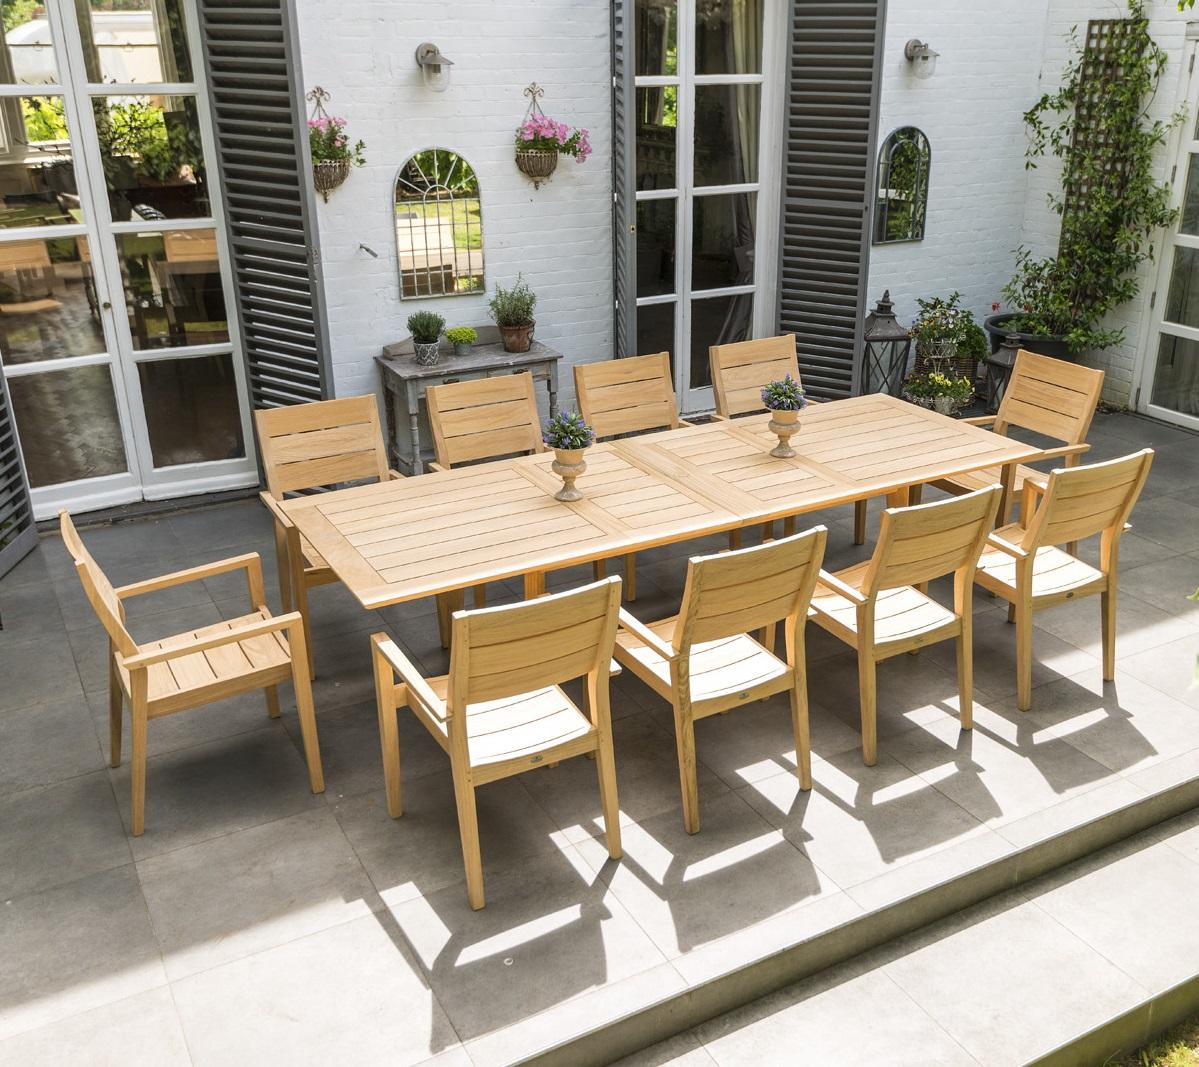 wooden_garden_dining_furniture_10_seater_patio_table_chairs_roble_hardwood_kent_uk